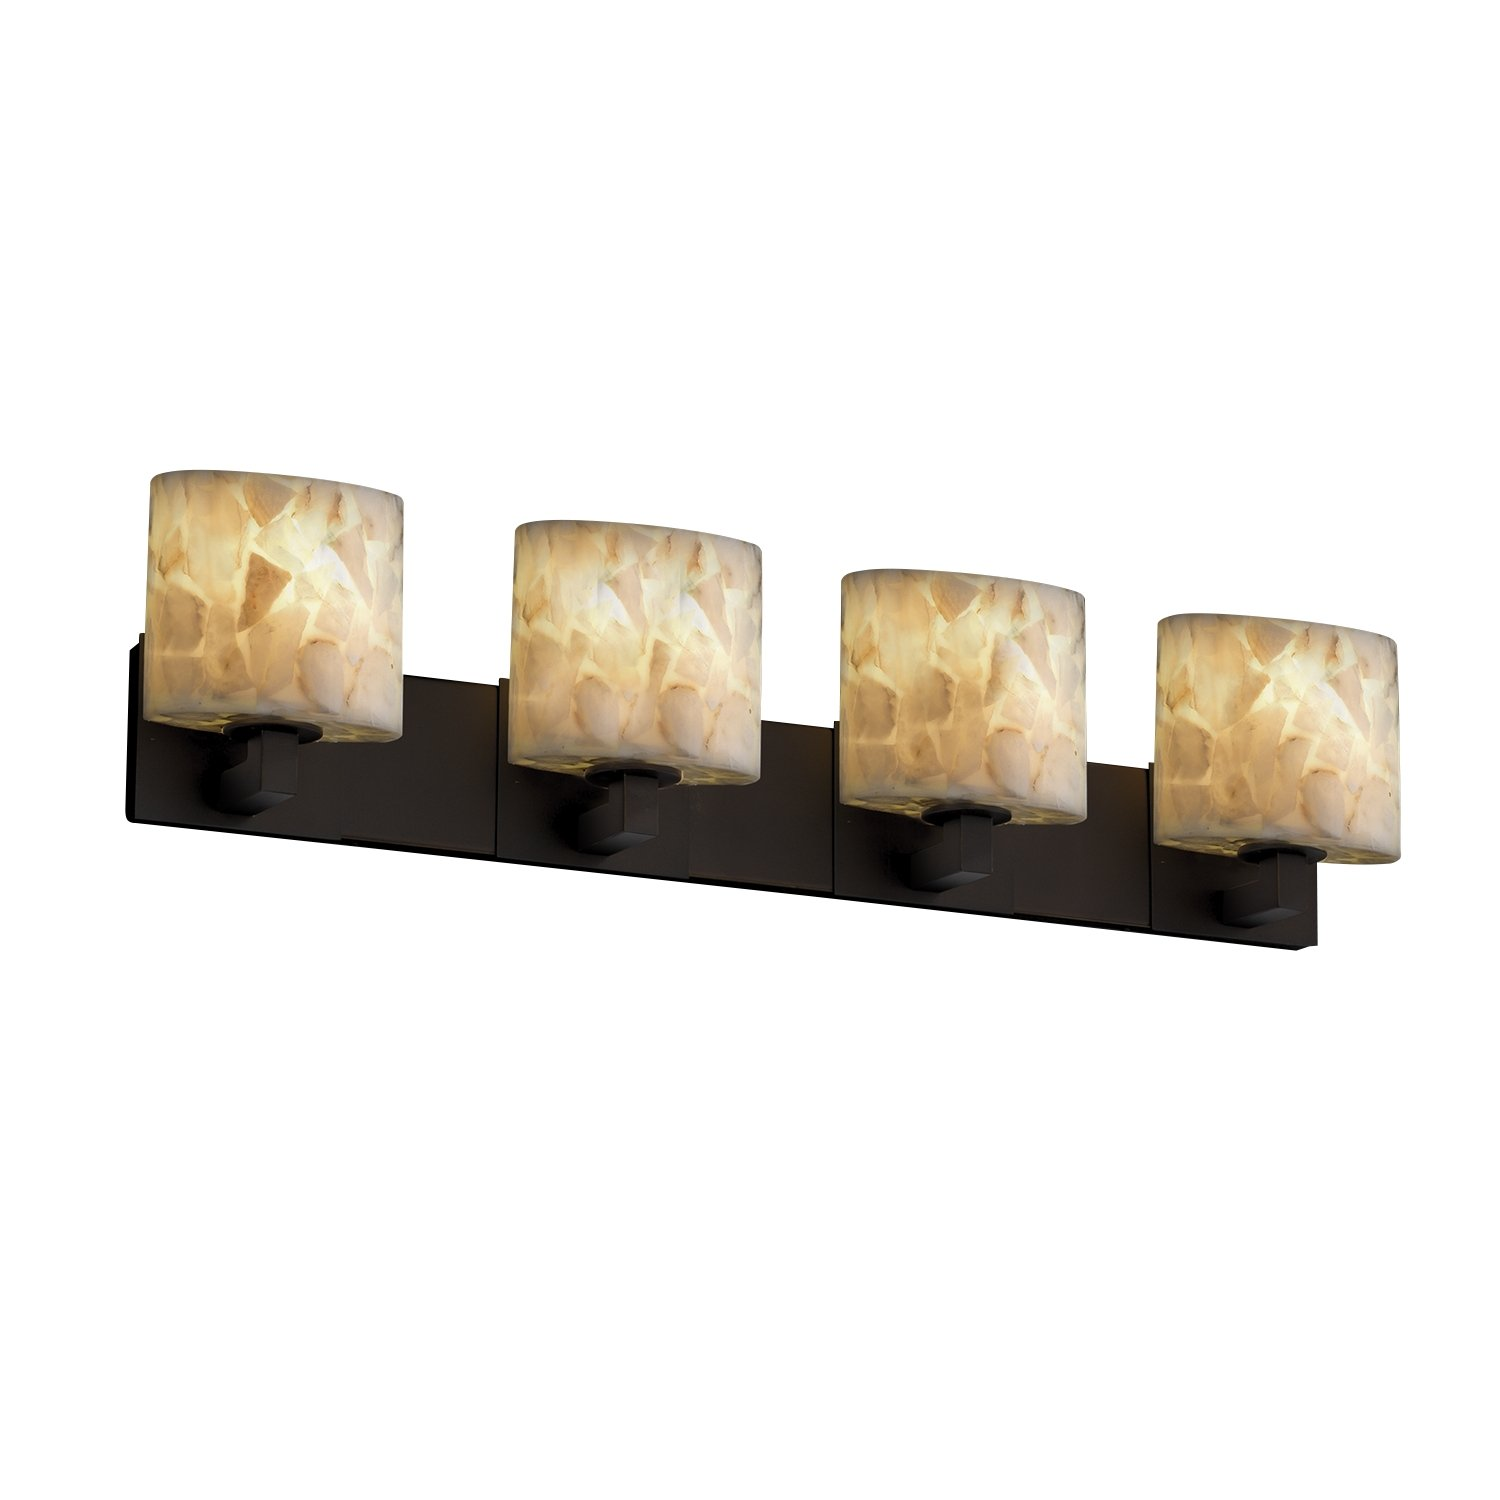 Amazon.com: Justice Design Group Alabaster Rocks! 4-Light Bath Bar ...